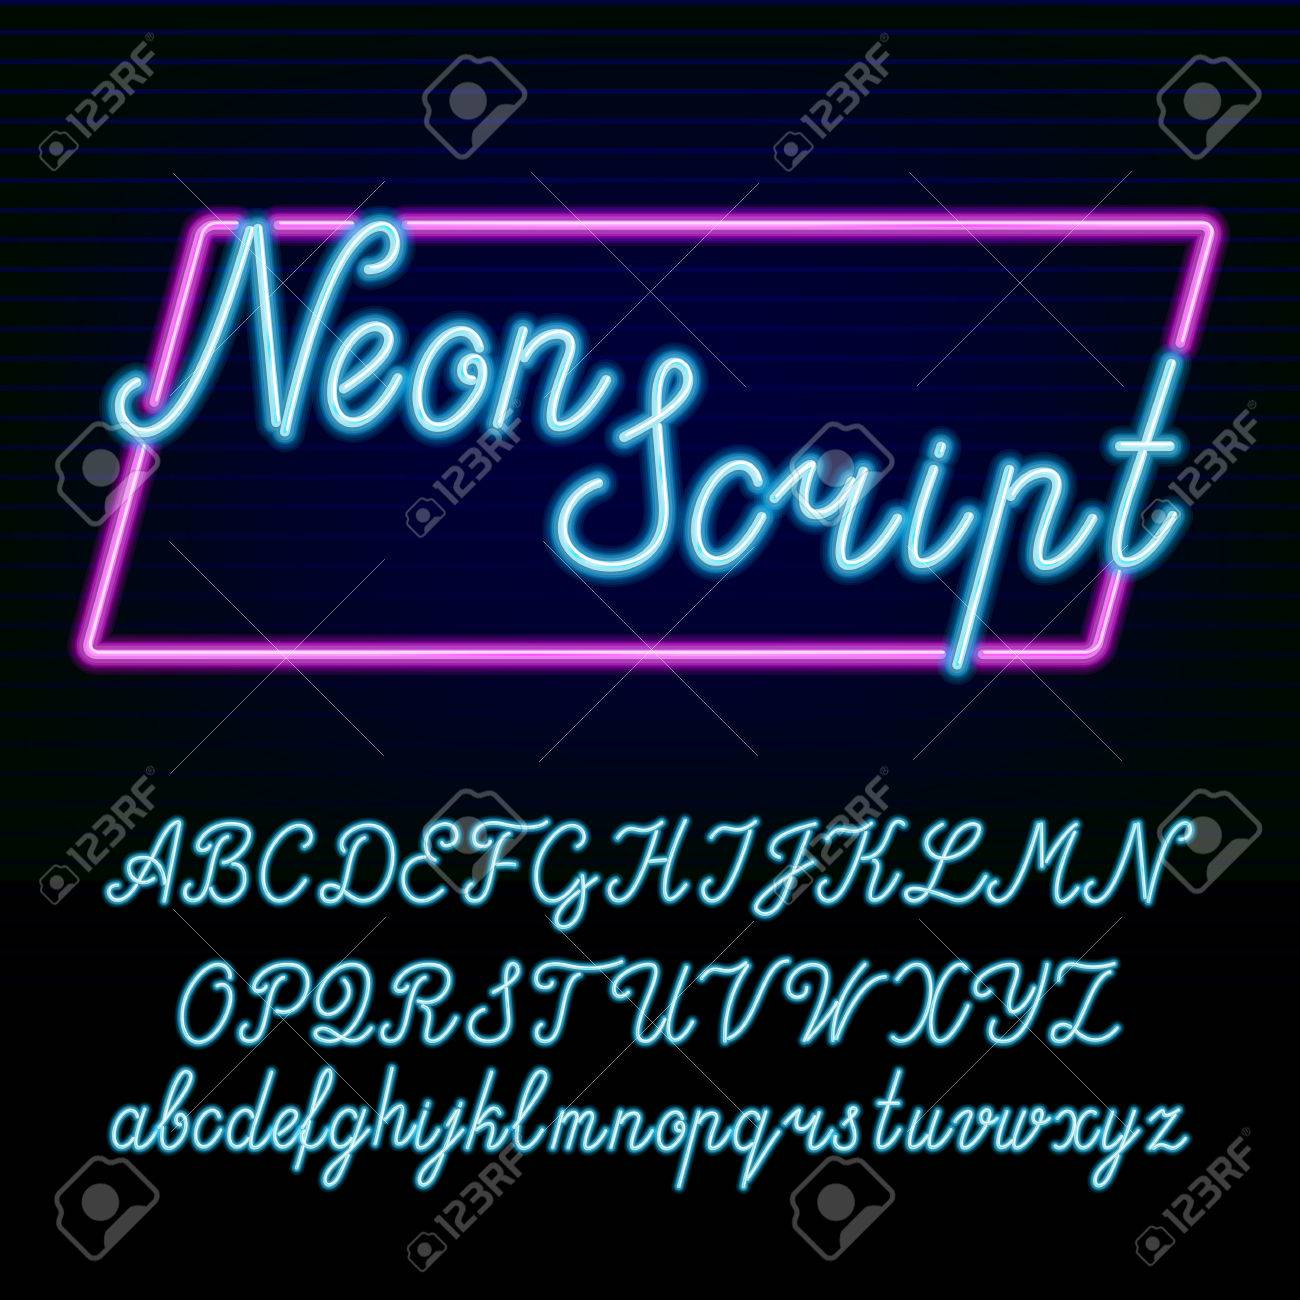 neon tube alphabet font hand drawn script type letters and numbers on a dark background